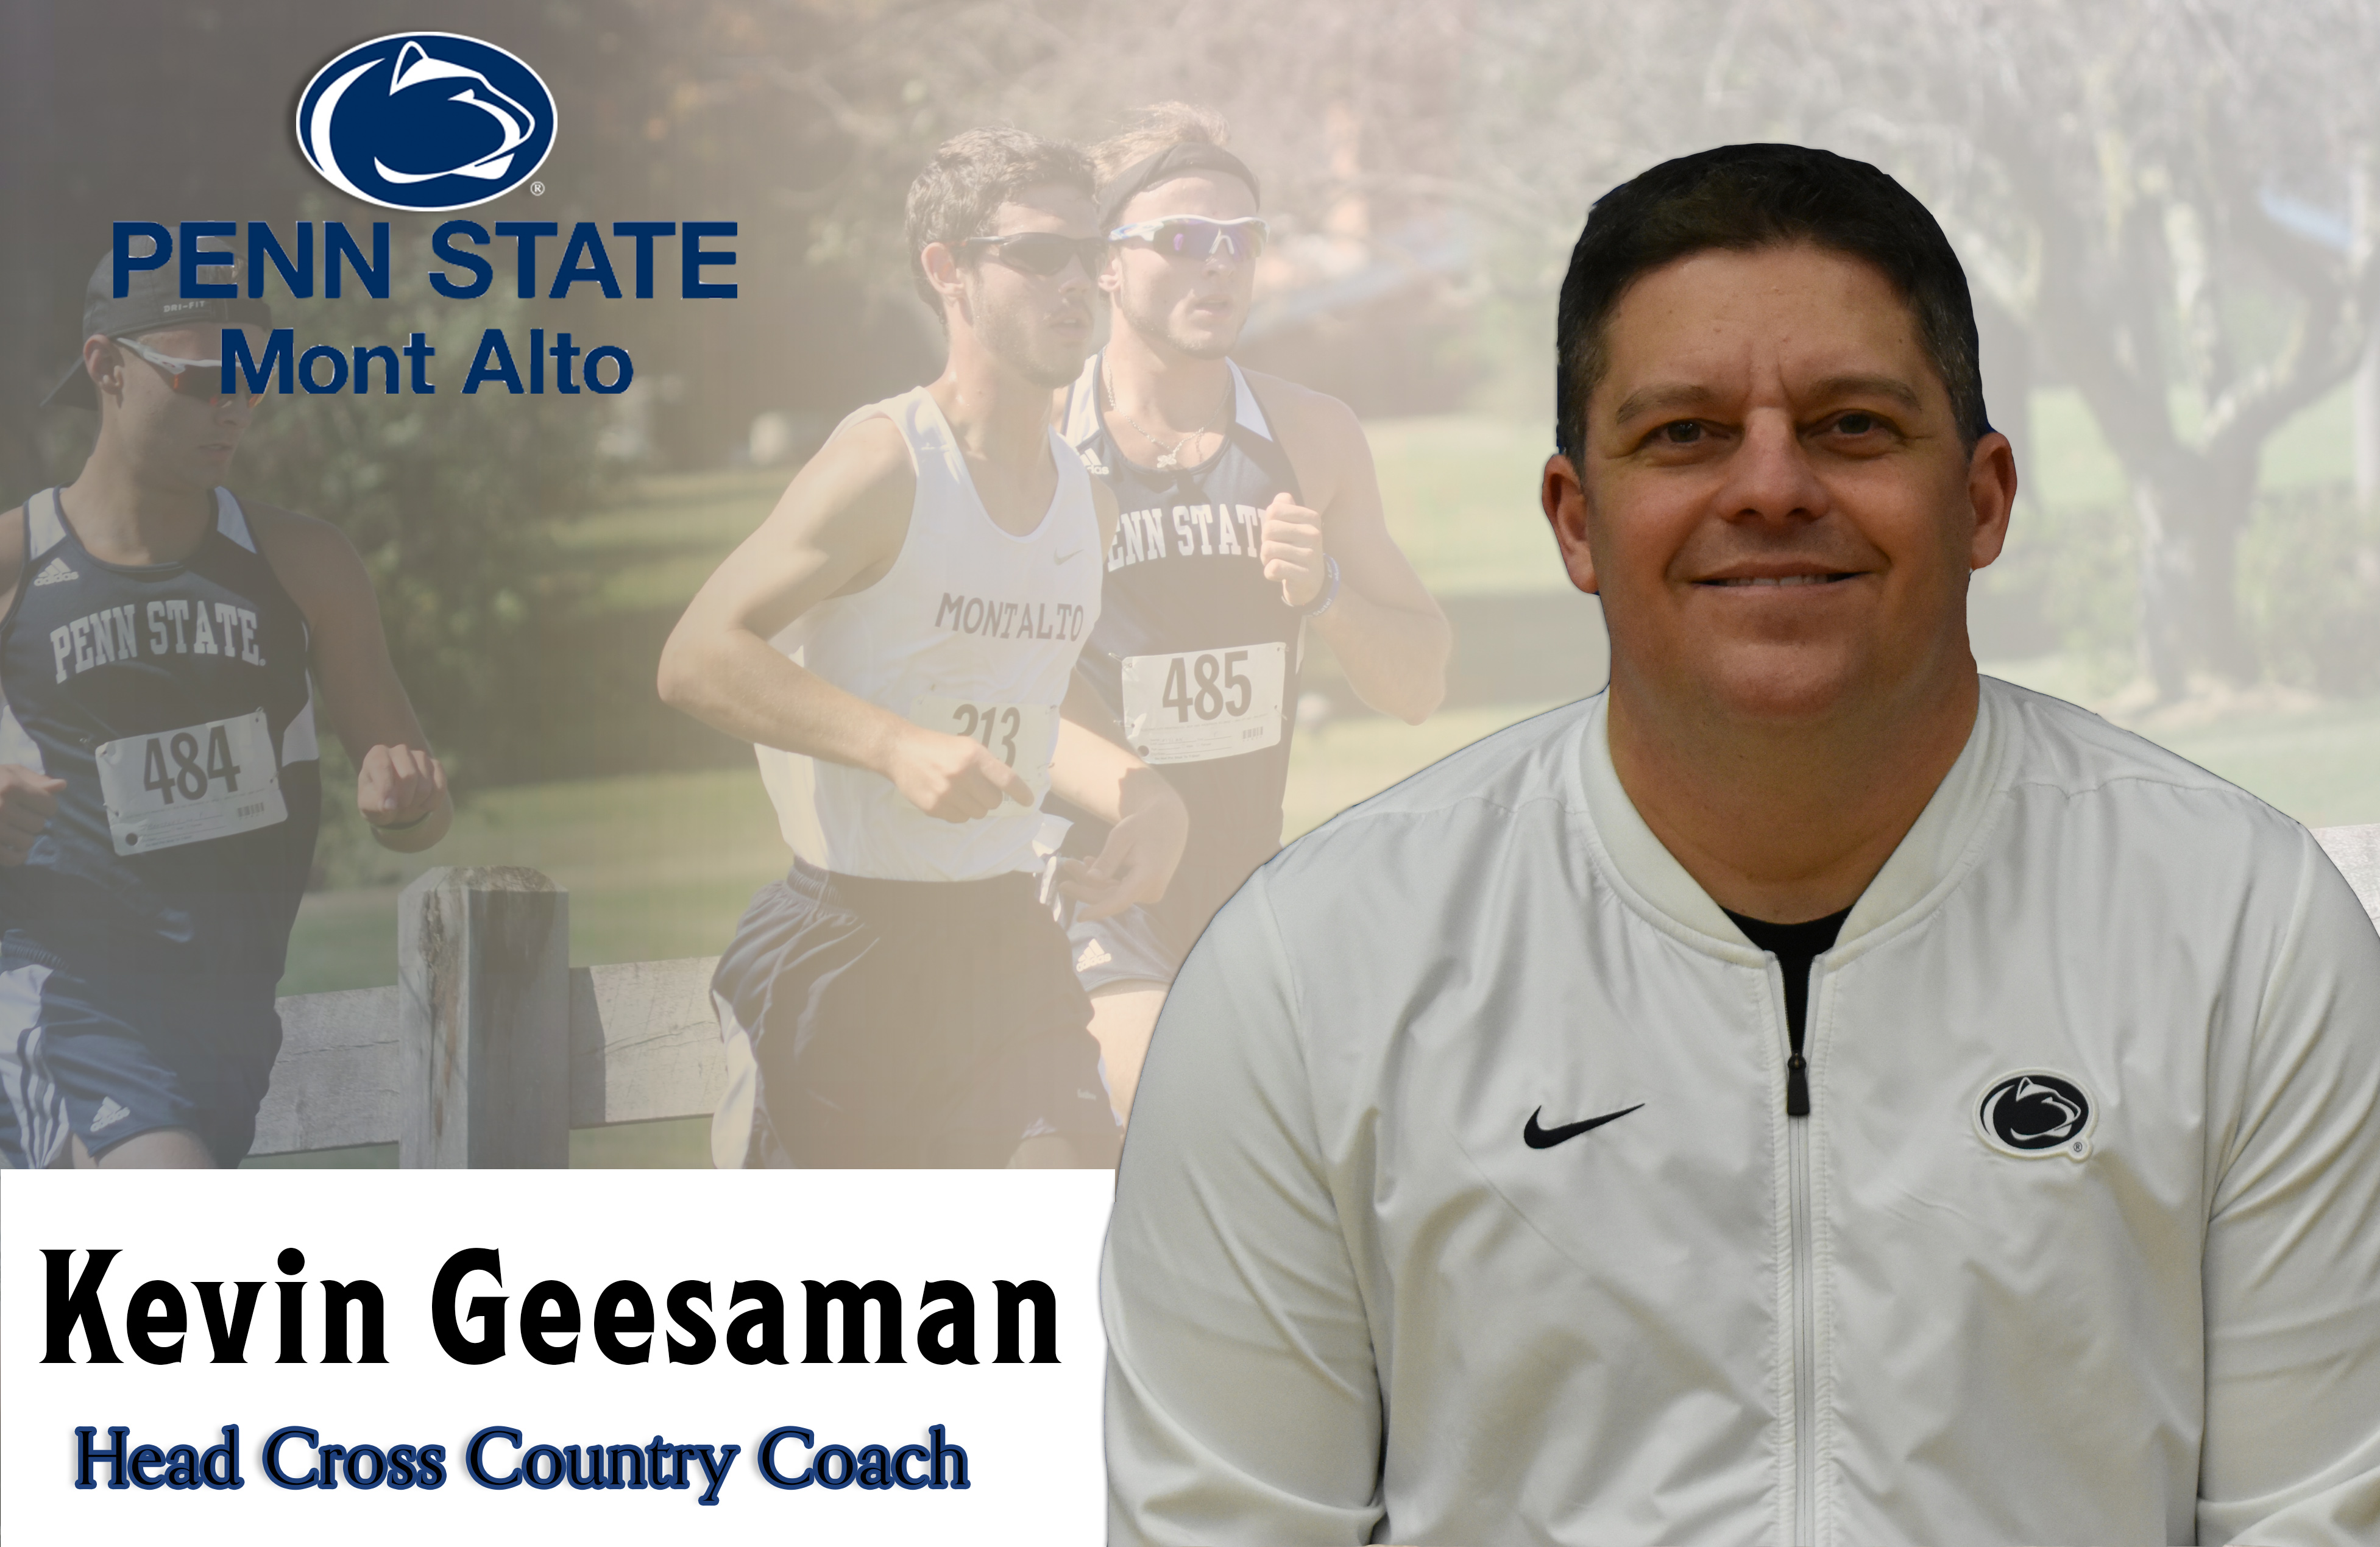 Kevin Geesaman to head PSMA Cross Country programs